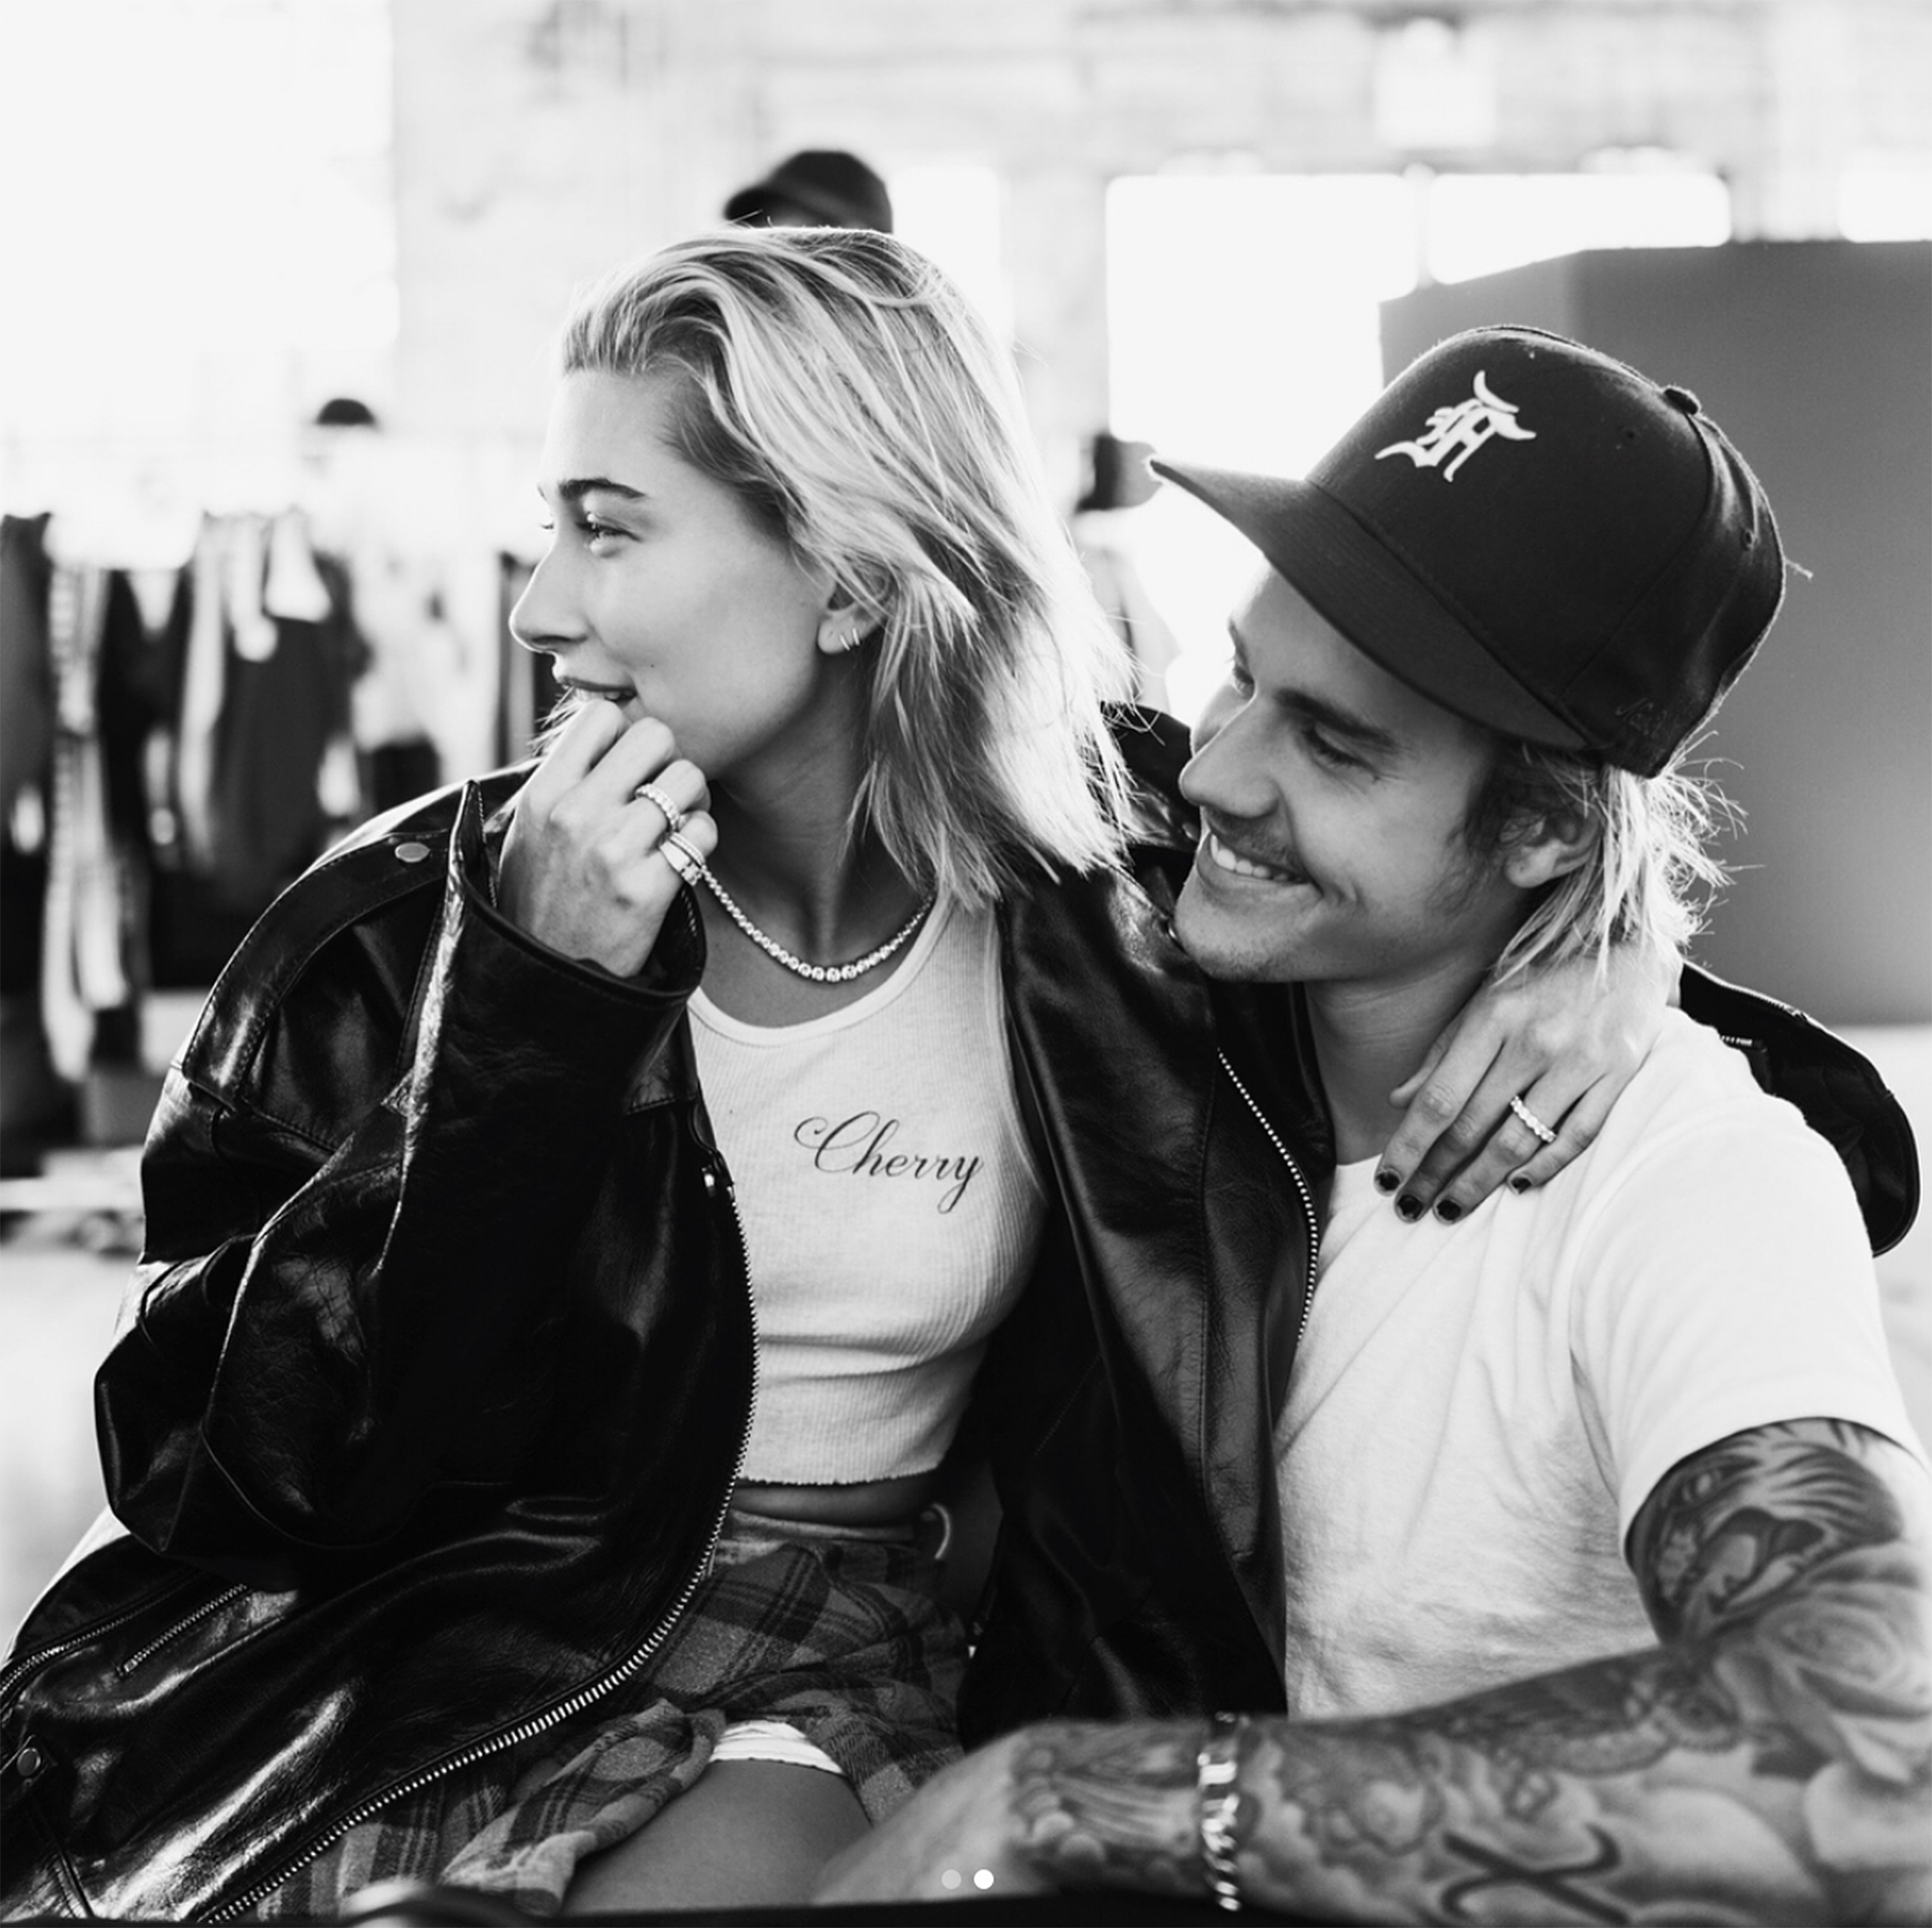 Justin Bieber Confirms Engagement to Hailey Baldwin: 'I promise to lead our family with honor' https://www.instagram.com/p/BlBvw2_jBKp/?taken-by=justinbieber Credit: Justin Bieber/Instagram